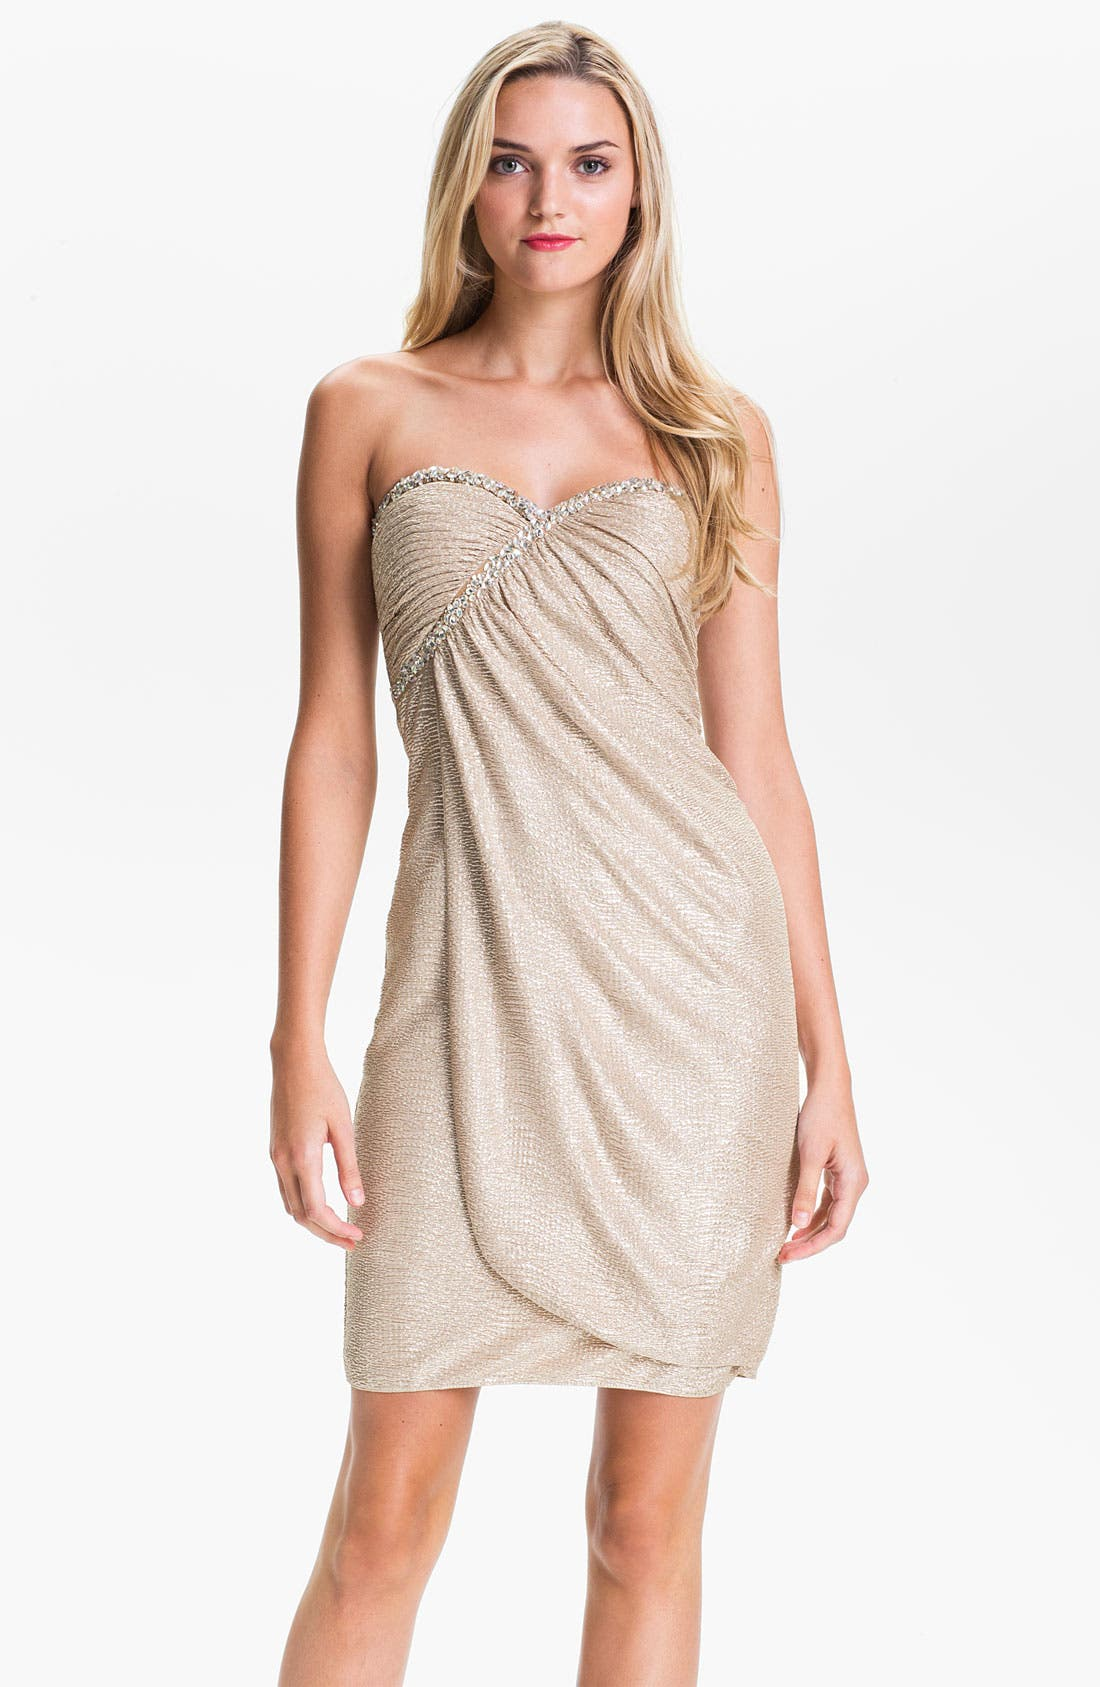 Main Image - Hailey by Adrianna Papell Strapless Metallic Sarong Dress